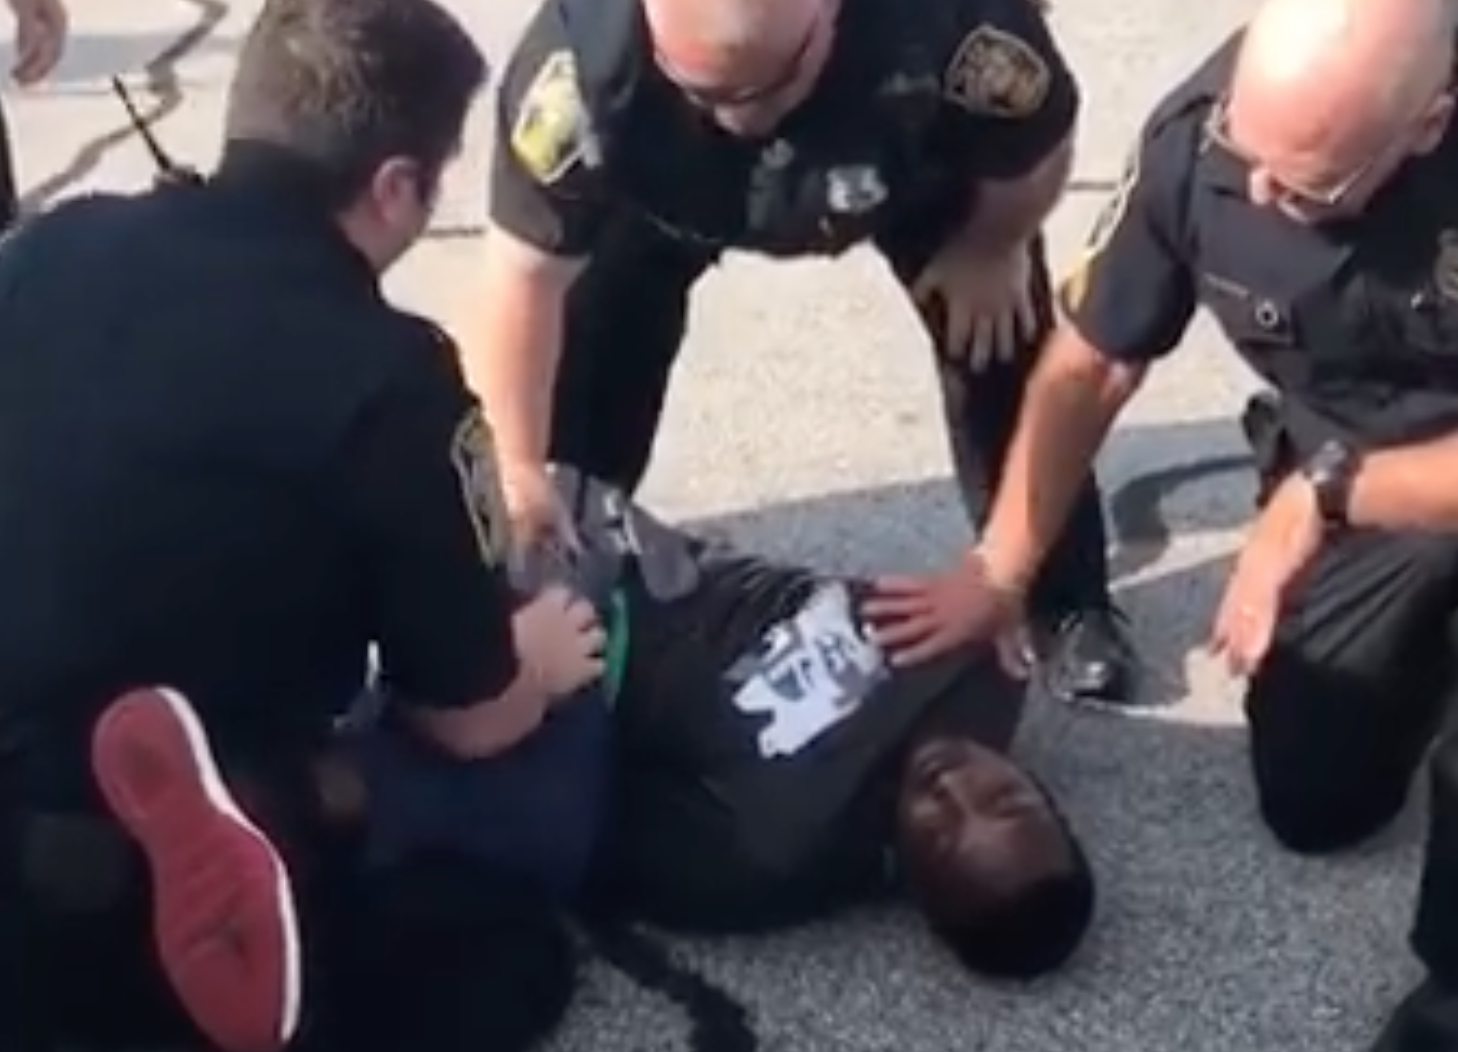 Video: Former NFL player slammed to ground during arrest